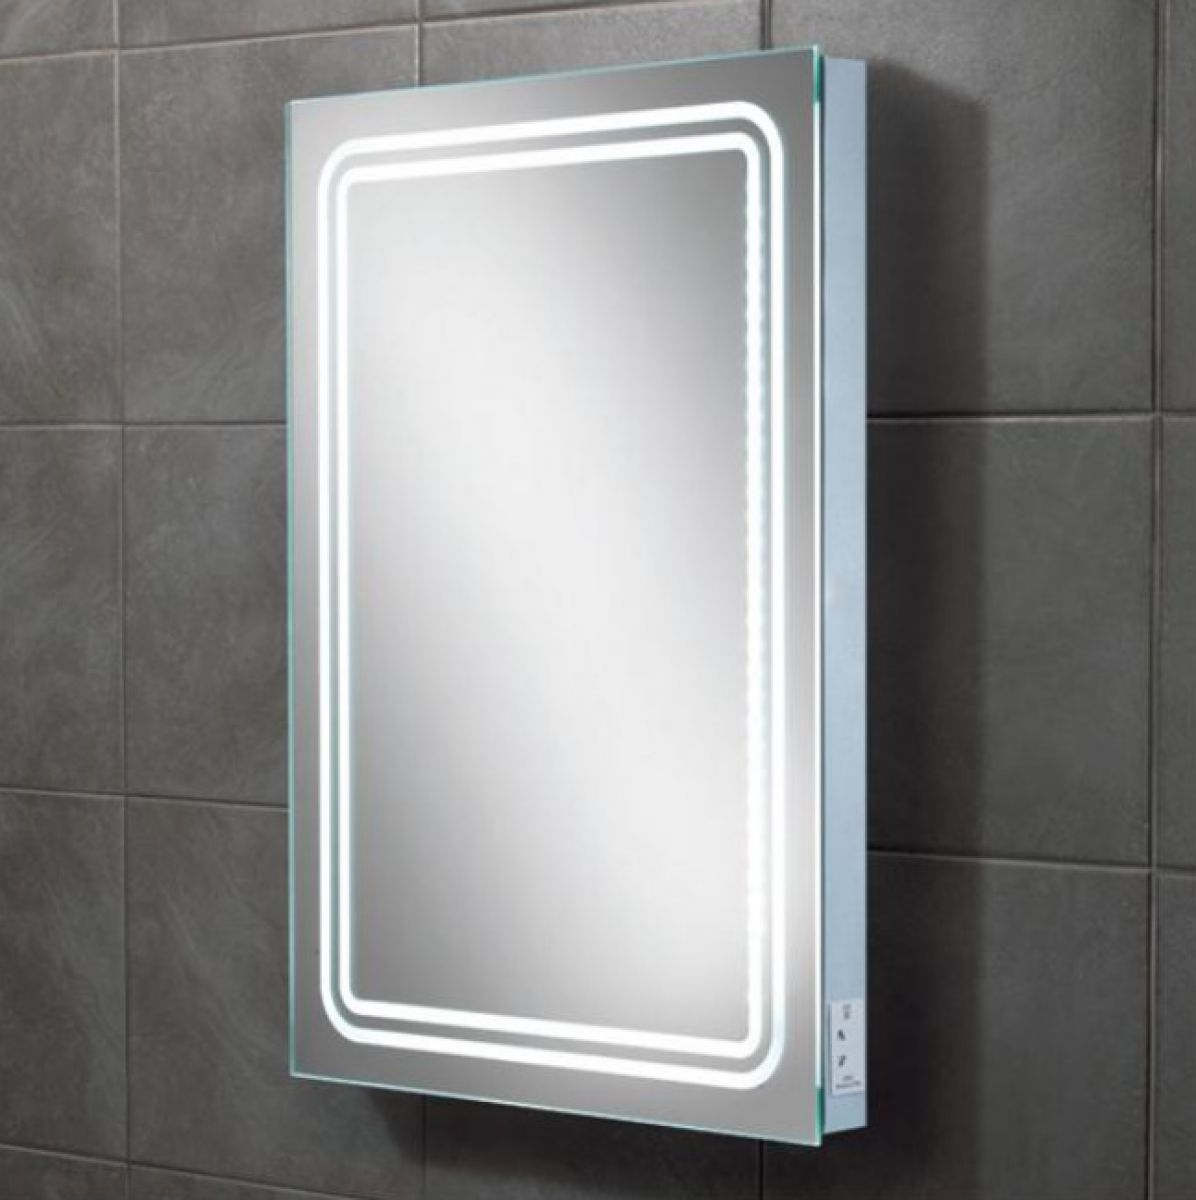 Illuminated Mirrors Bathroom: HIB Rotary Illuminated Bathroom Mirror : UK Bathrooms